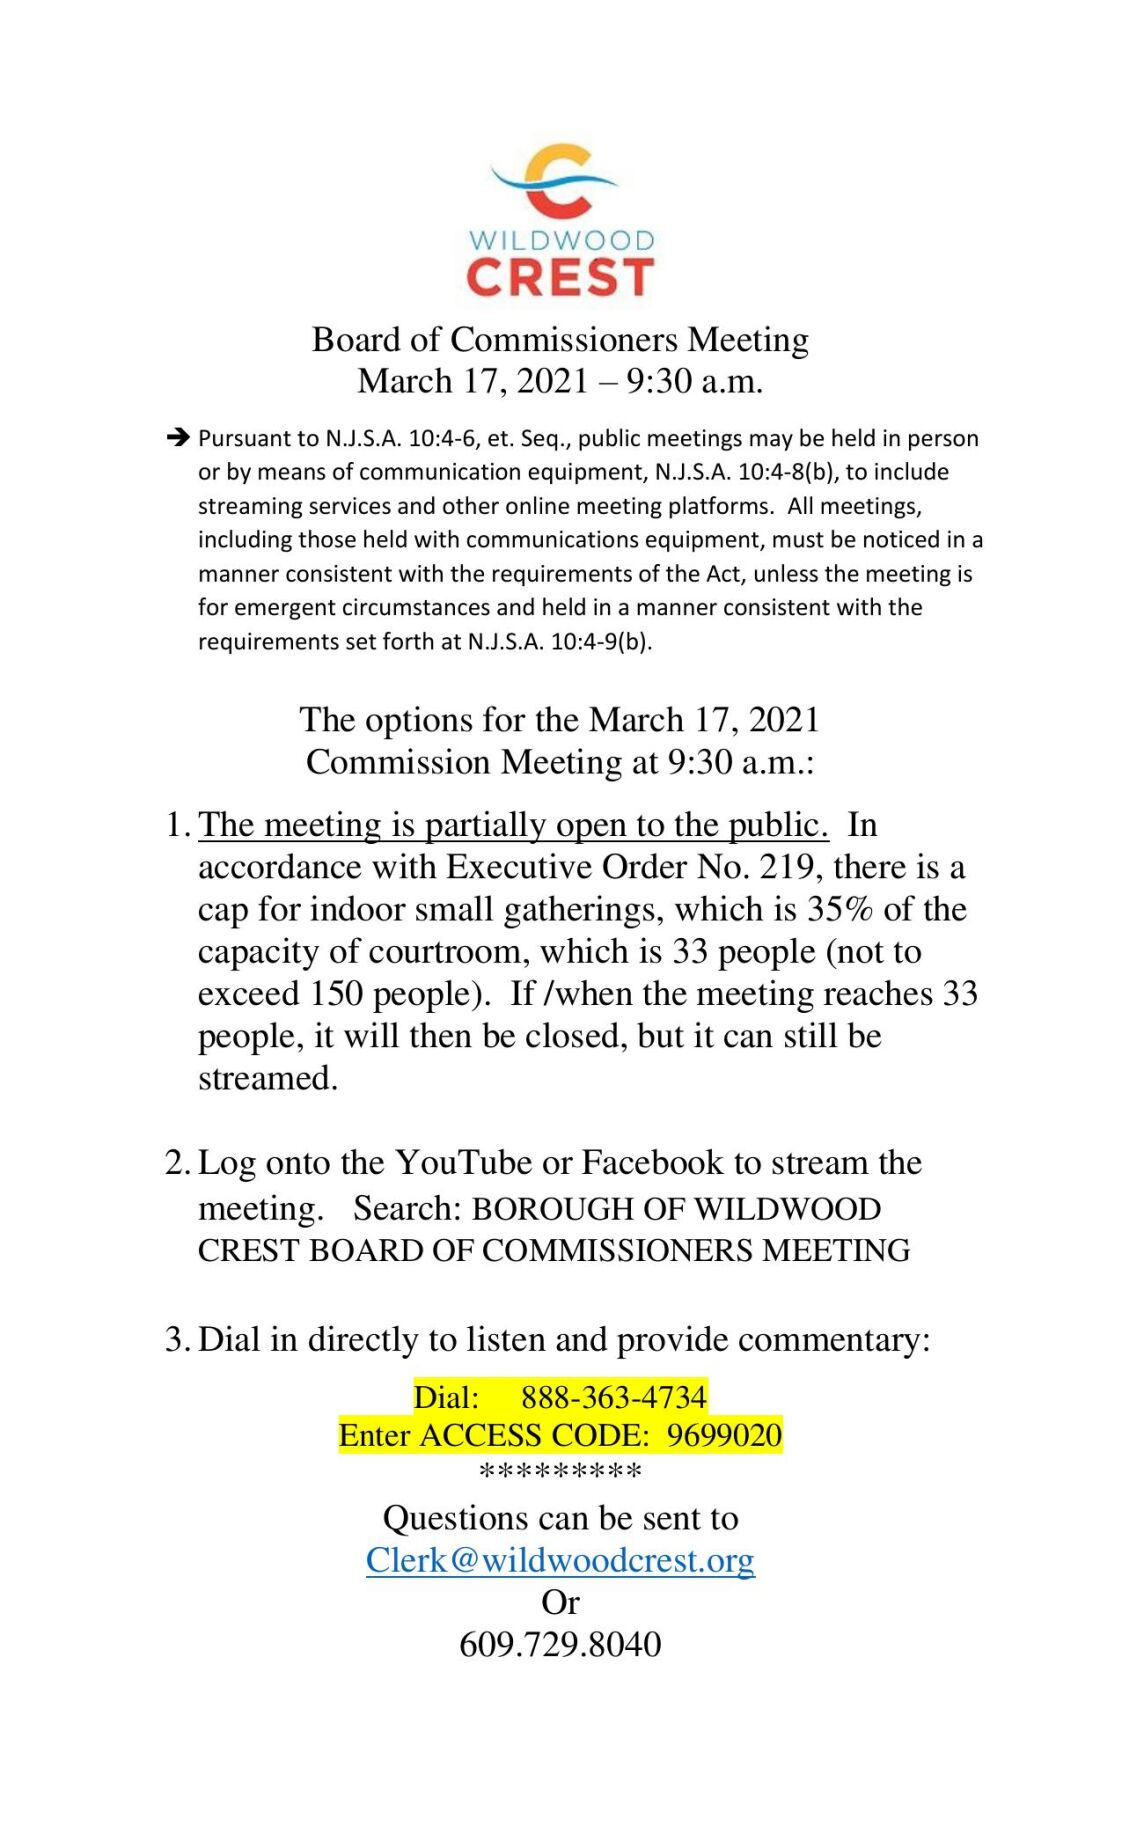 Wildwood Crest Commissioners Meeting Agenda March 17, 2021